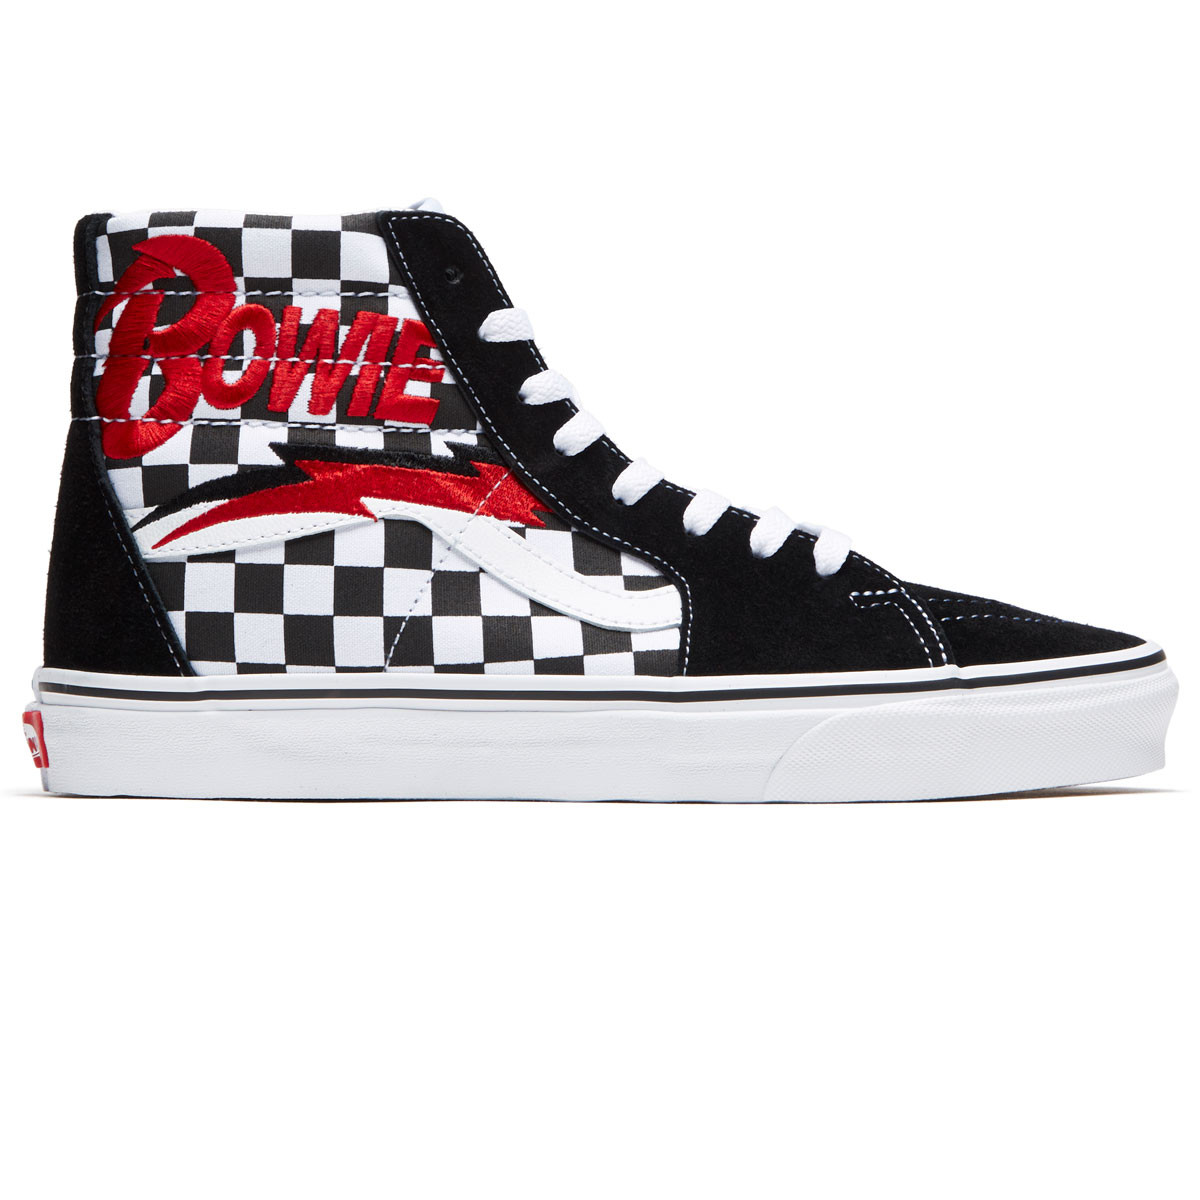 Vans x David Bowie Sk8 Hi Shoes